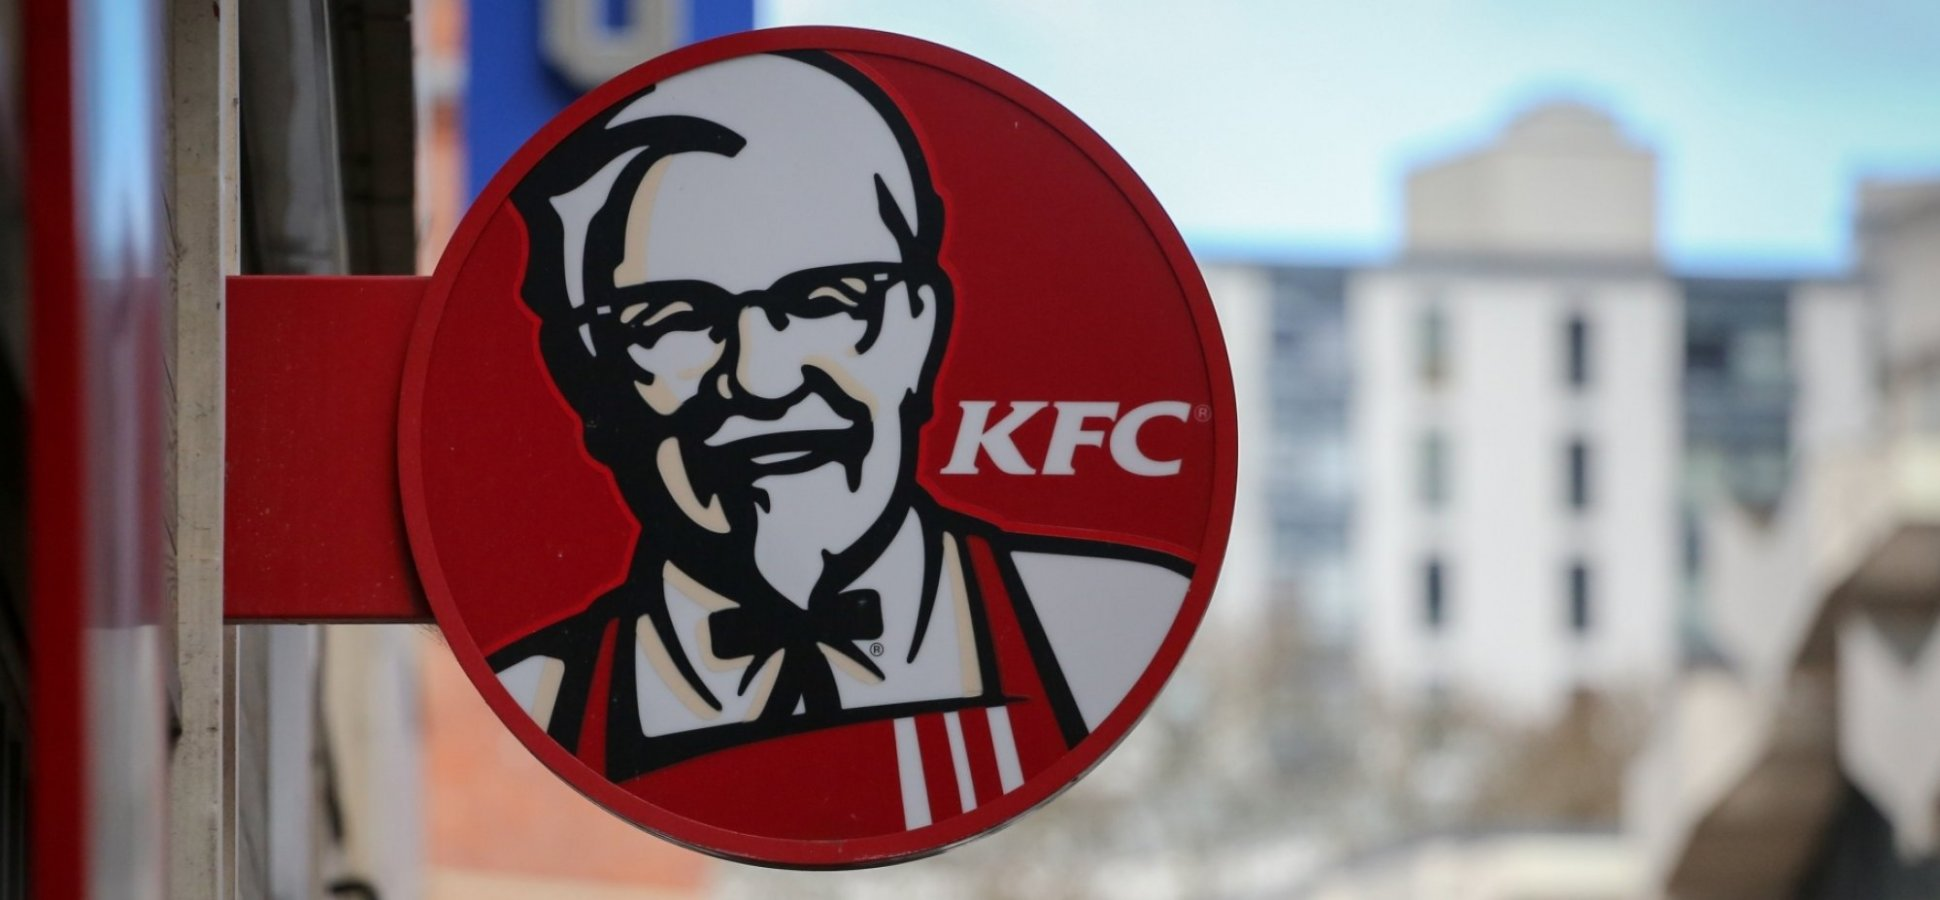 KFC Just Used Technology to Completely Change Everything You've Ever Thought About It. It's Really Very Clever